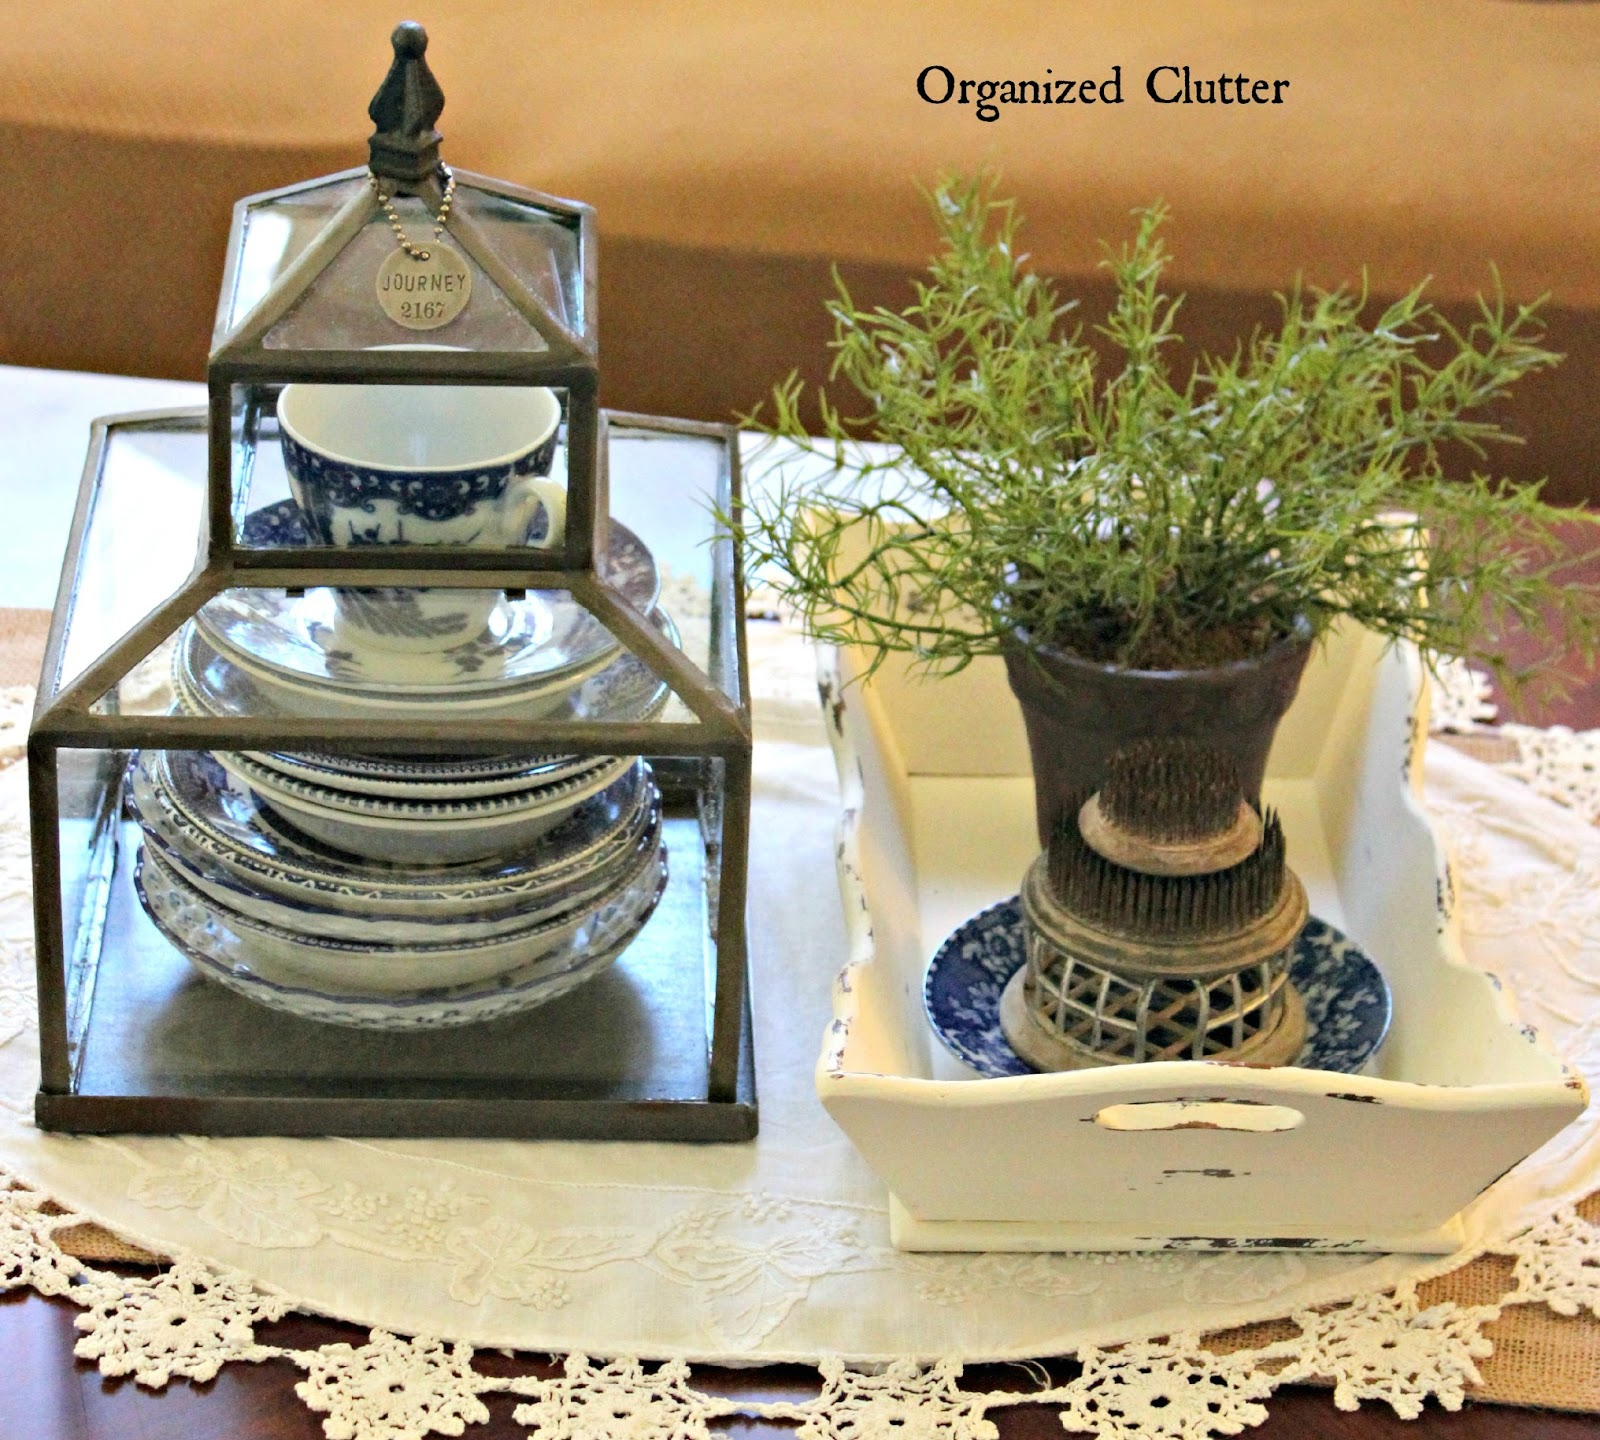 Blue & White China In A Leaded Glass Terrarium www.organizedclutter.net